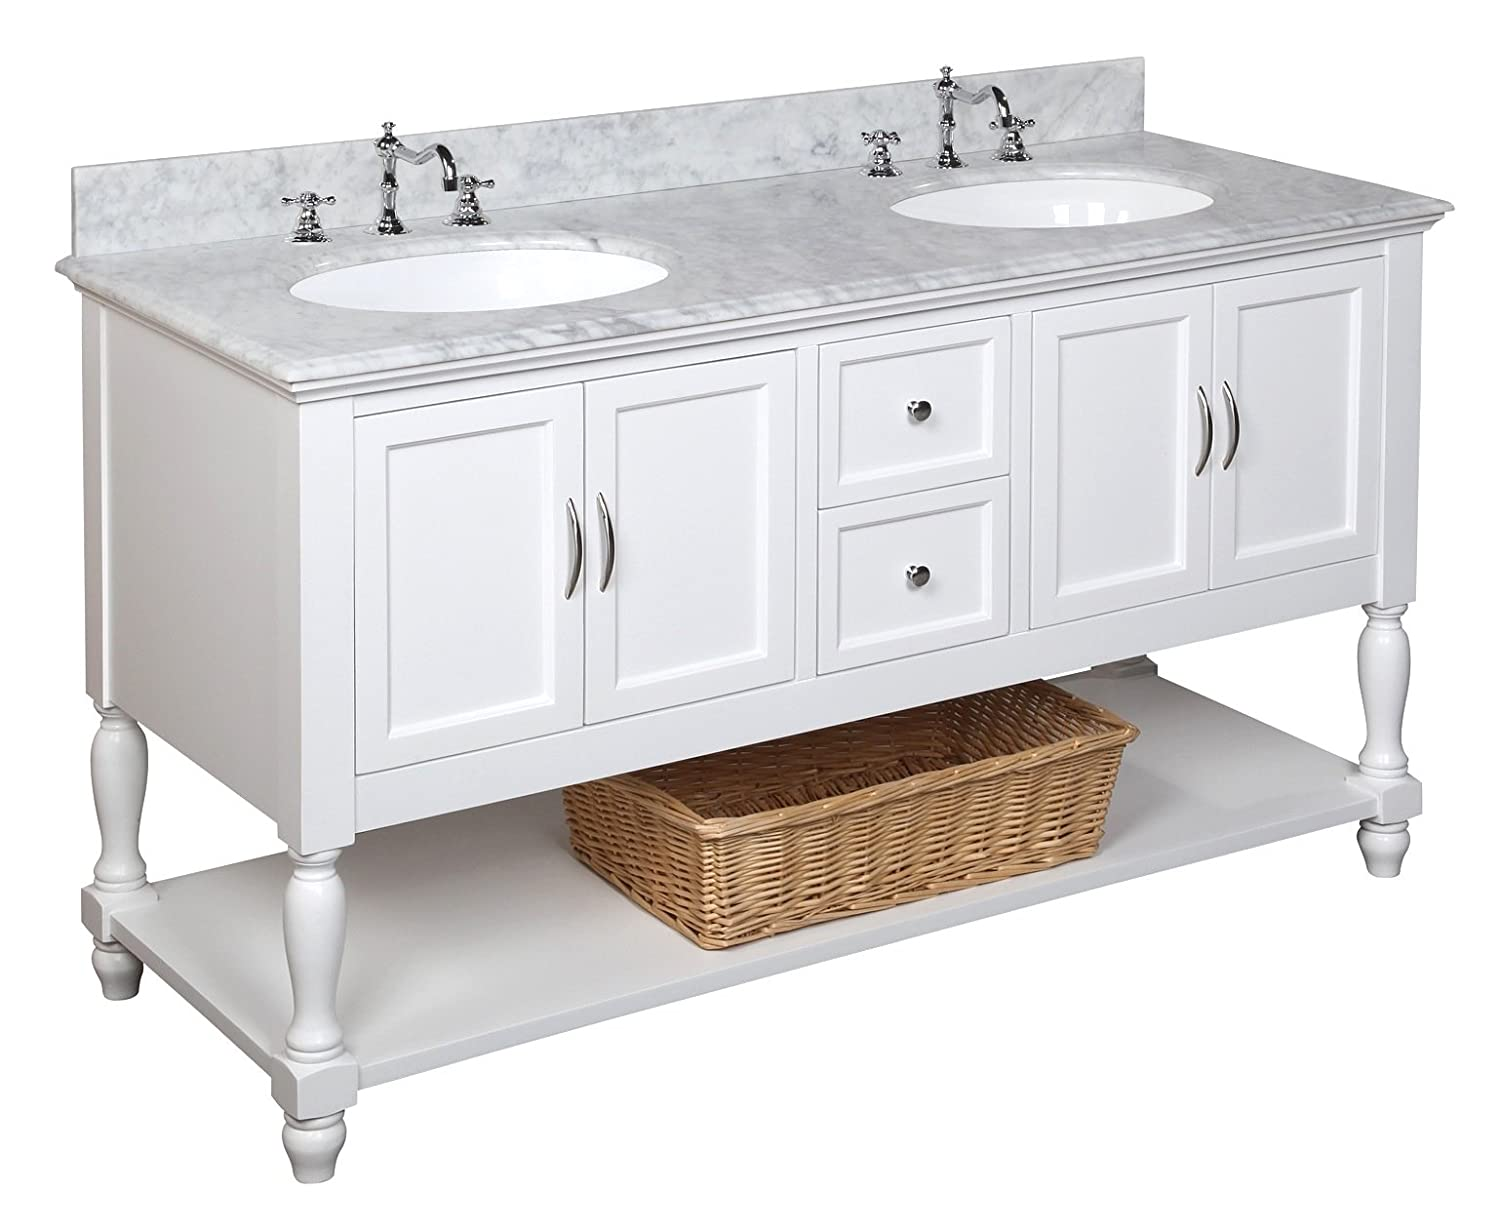 double vanity sink 60 inches. Kitchen Bath Collection KBC667WTCARR Beverly Double Sink Bathroom Vanity  With Marble Countertop Cabinet Soft Close Function And Undermount Ceramic